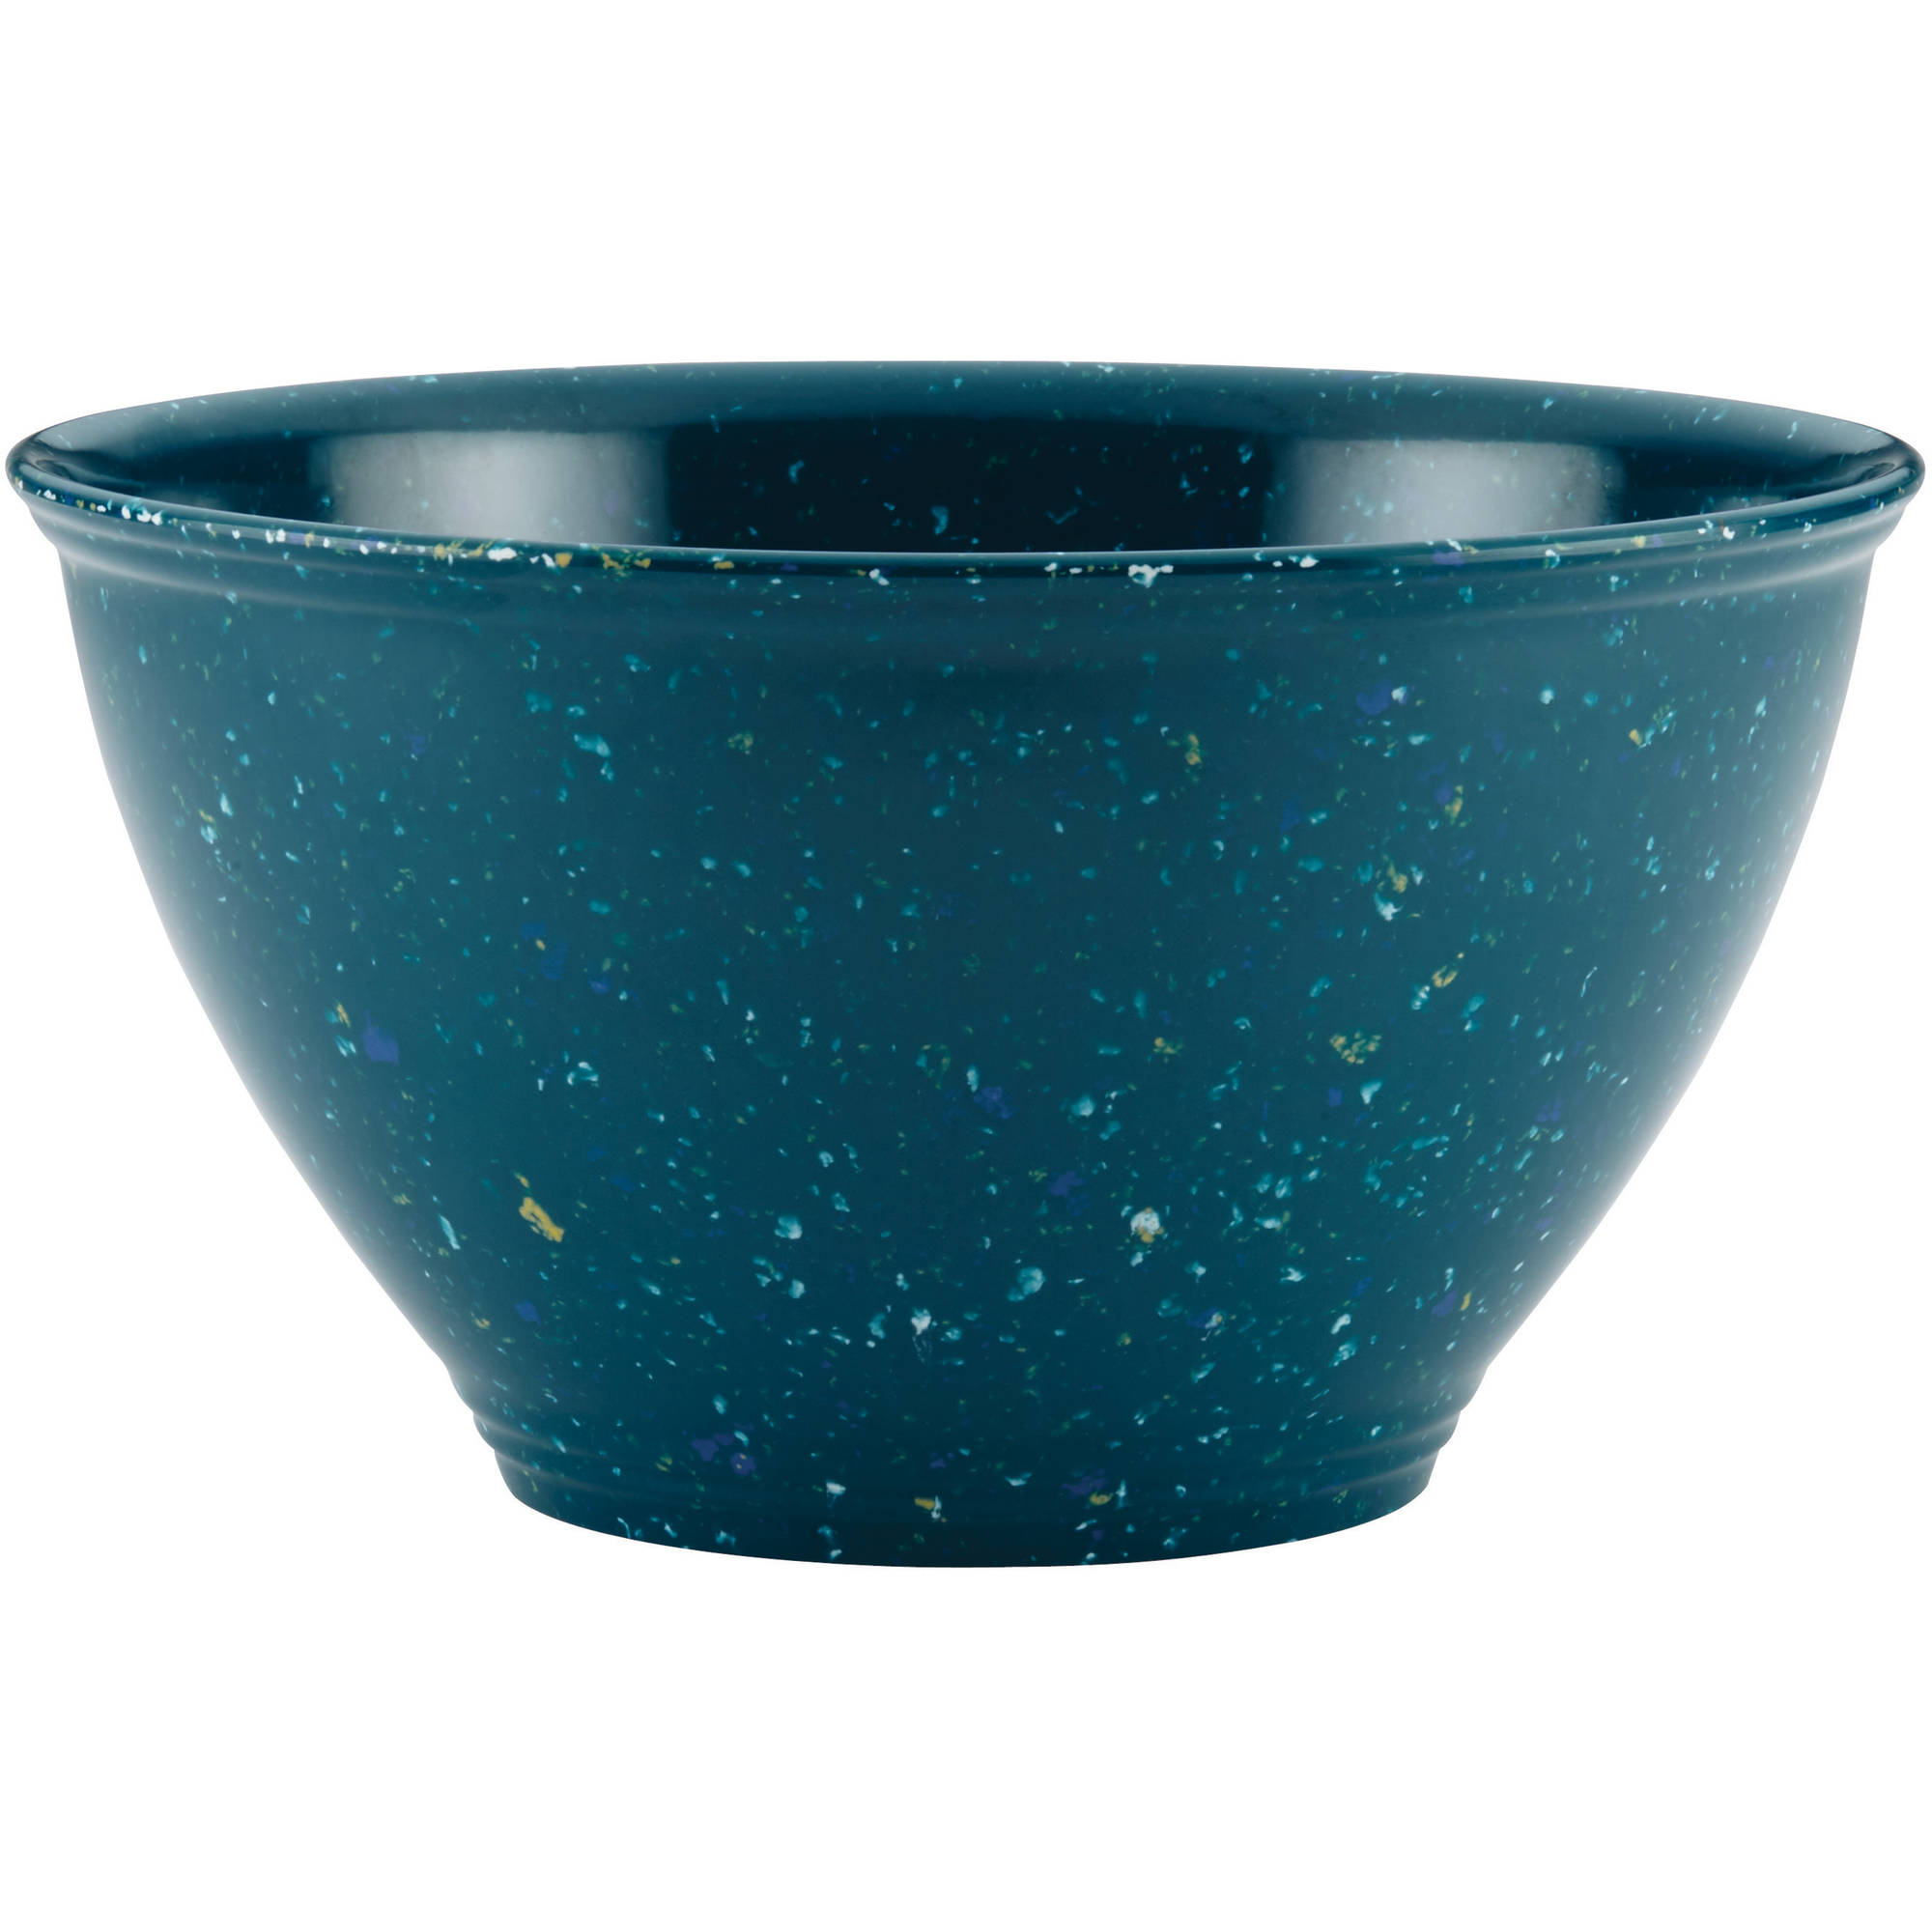 Rachael Ray Kitchenware Garbage Bowl